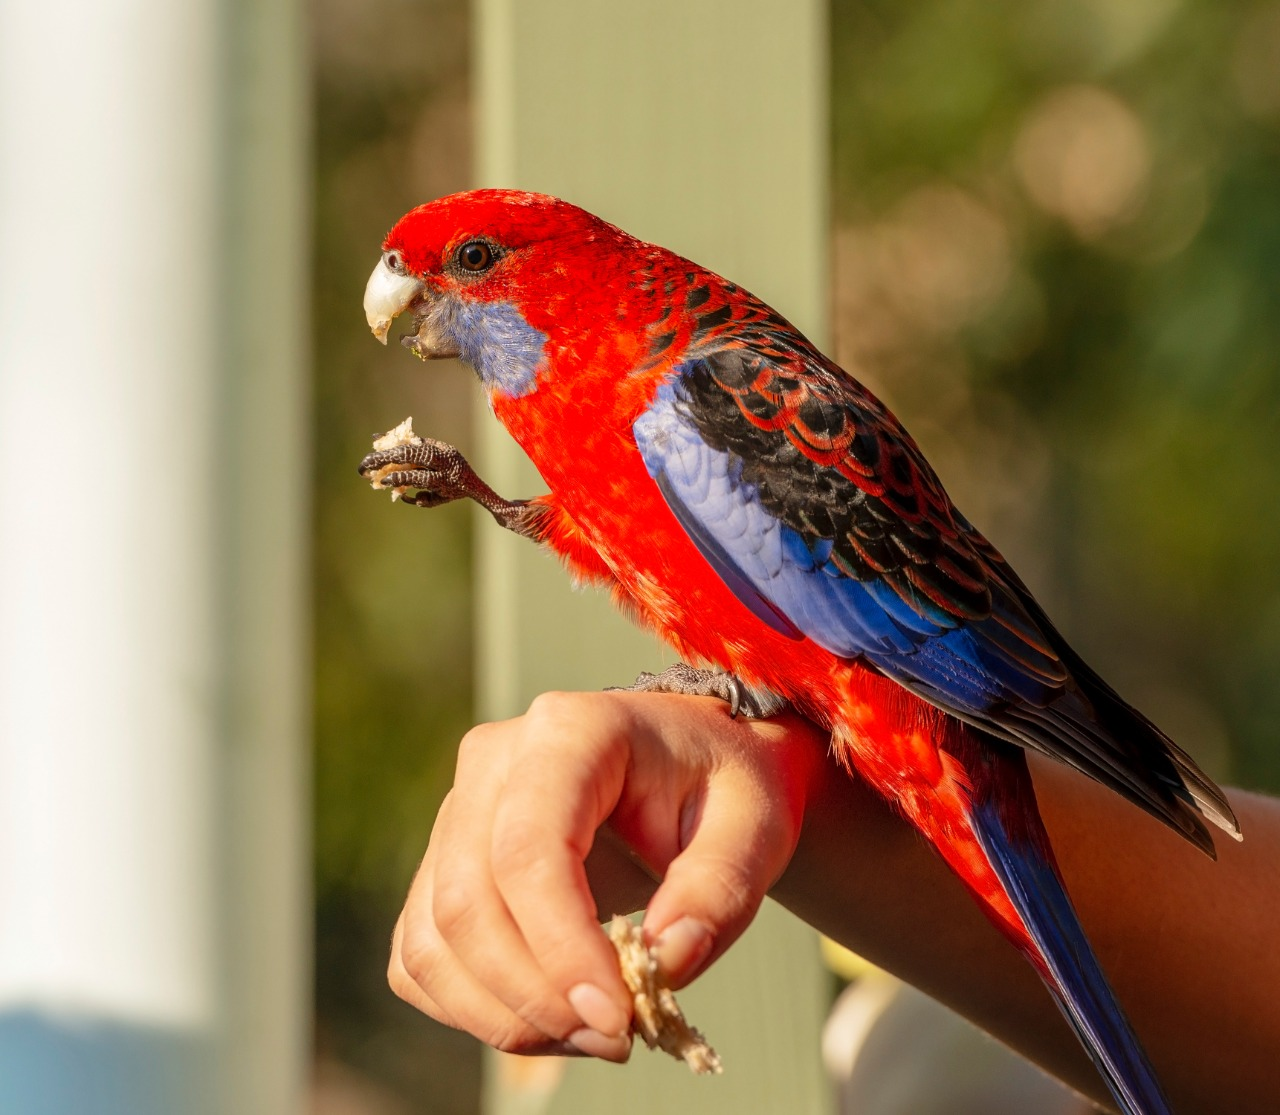 Crimson Rosella eating while standing on owners hand in the afternoon sunlight